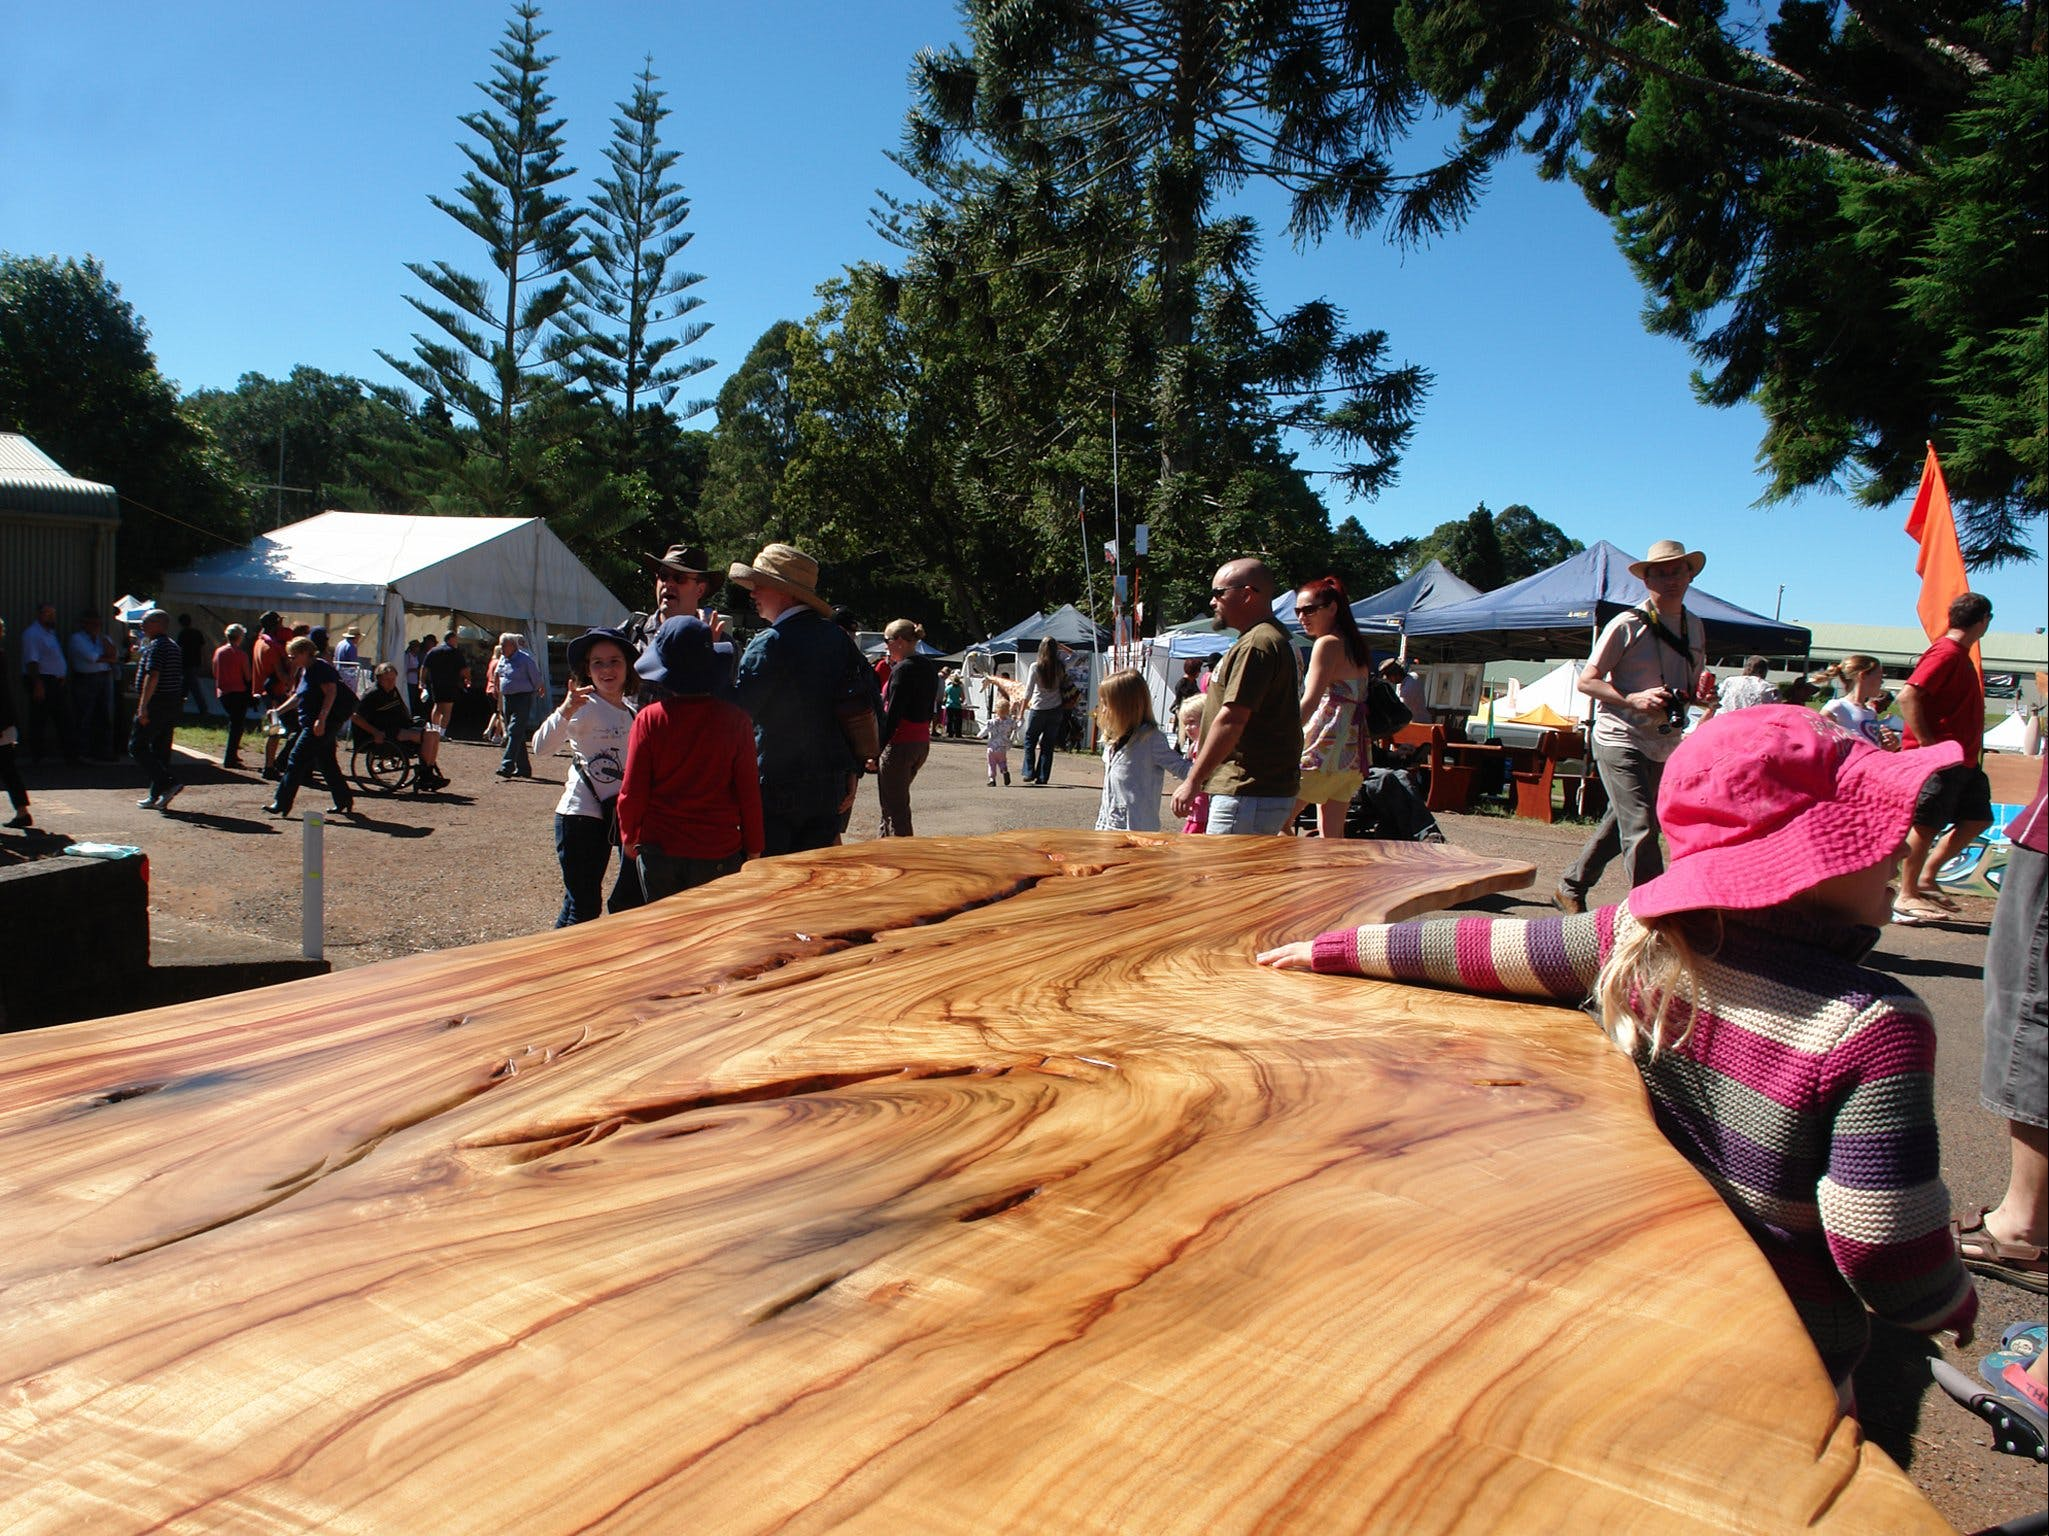 Maleny Wood Expo From Seed to Fine Furniture - New South Wales Tourism